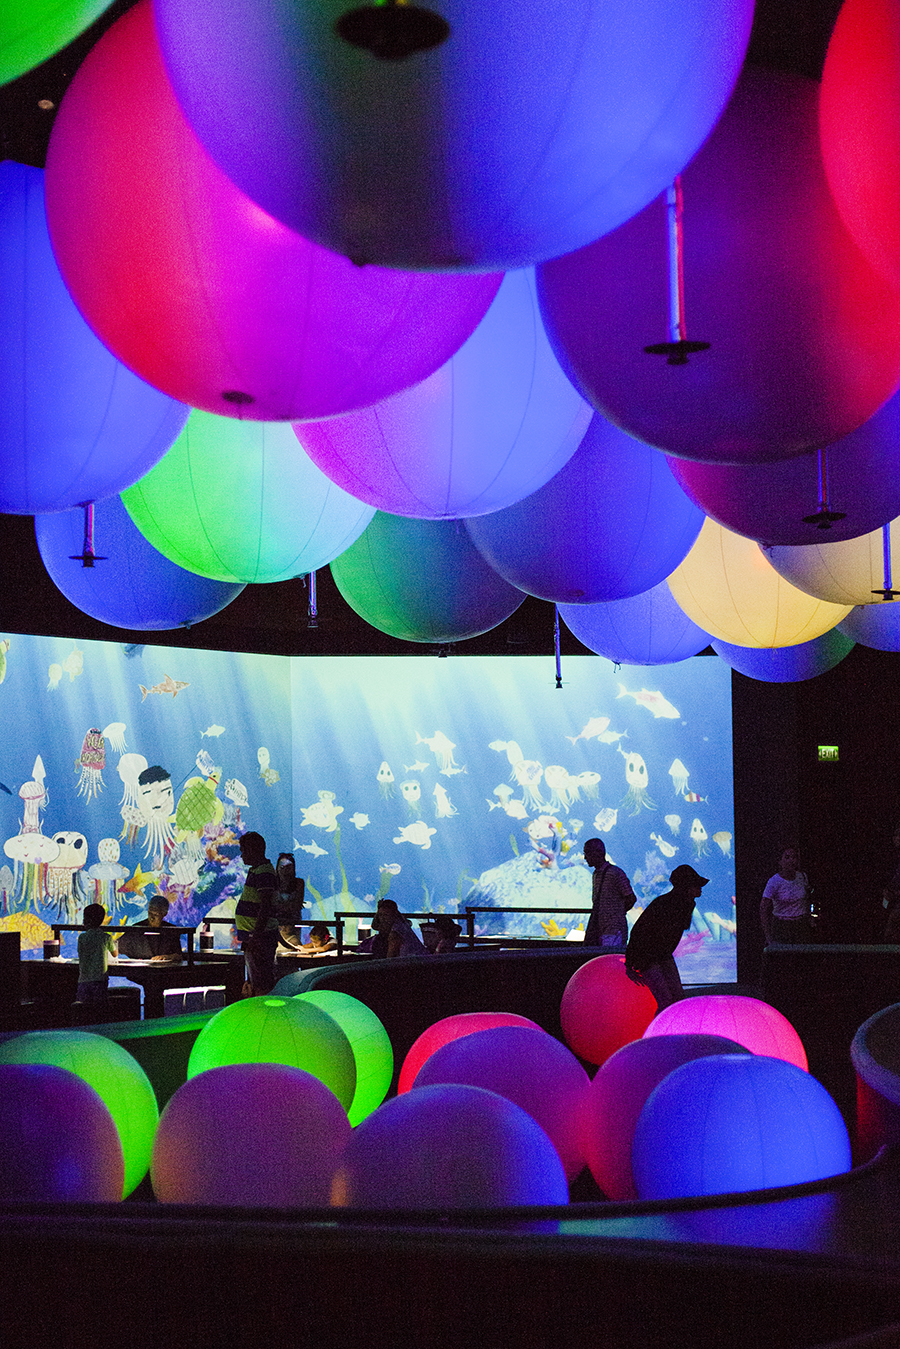 Light Ball Orchestra at the Future World exhibit at the ArtScience Museum, Singapore.